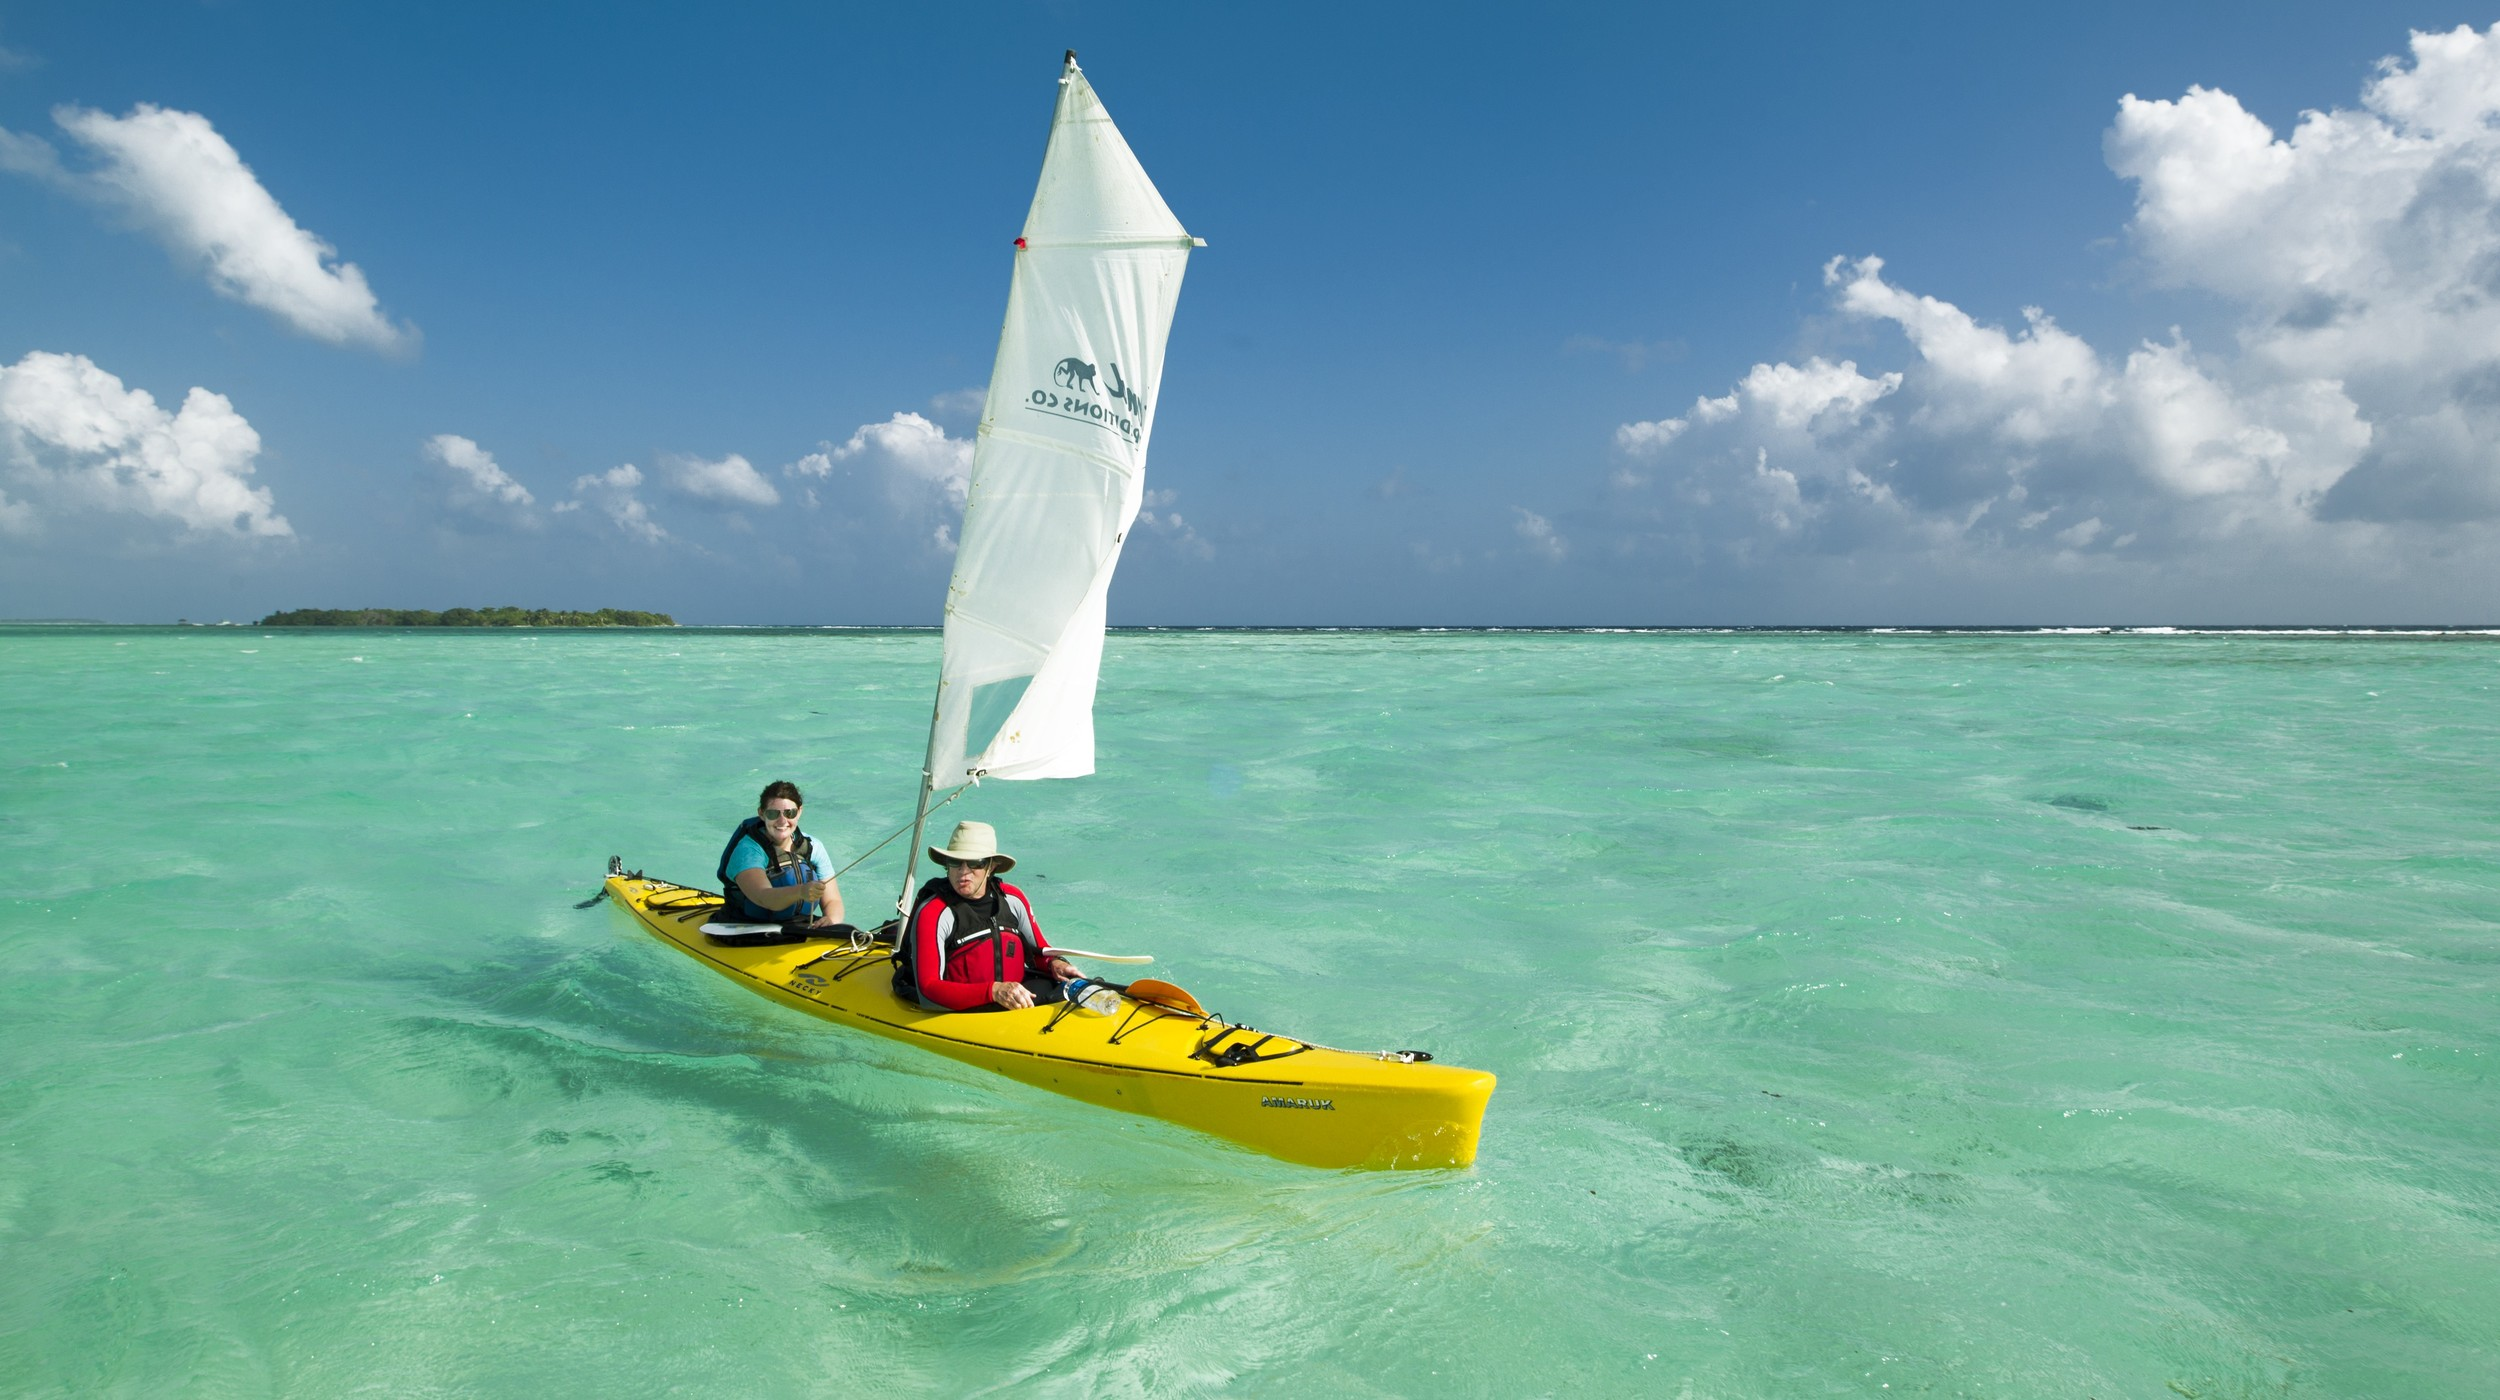 Kayak_Sailing_in_Belize with sail.jpg